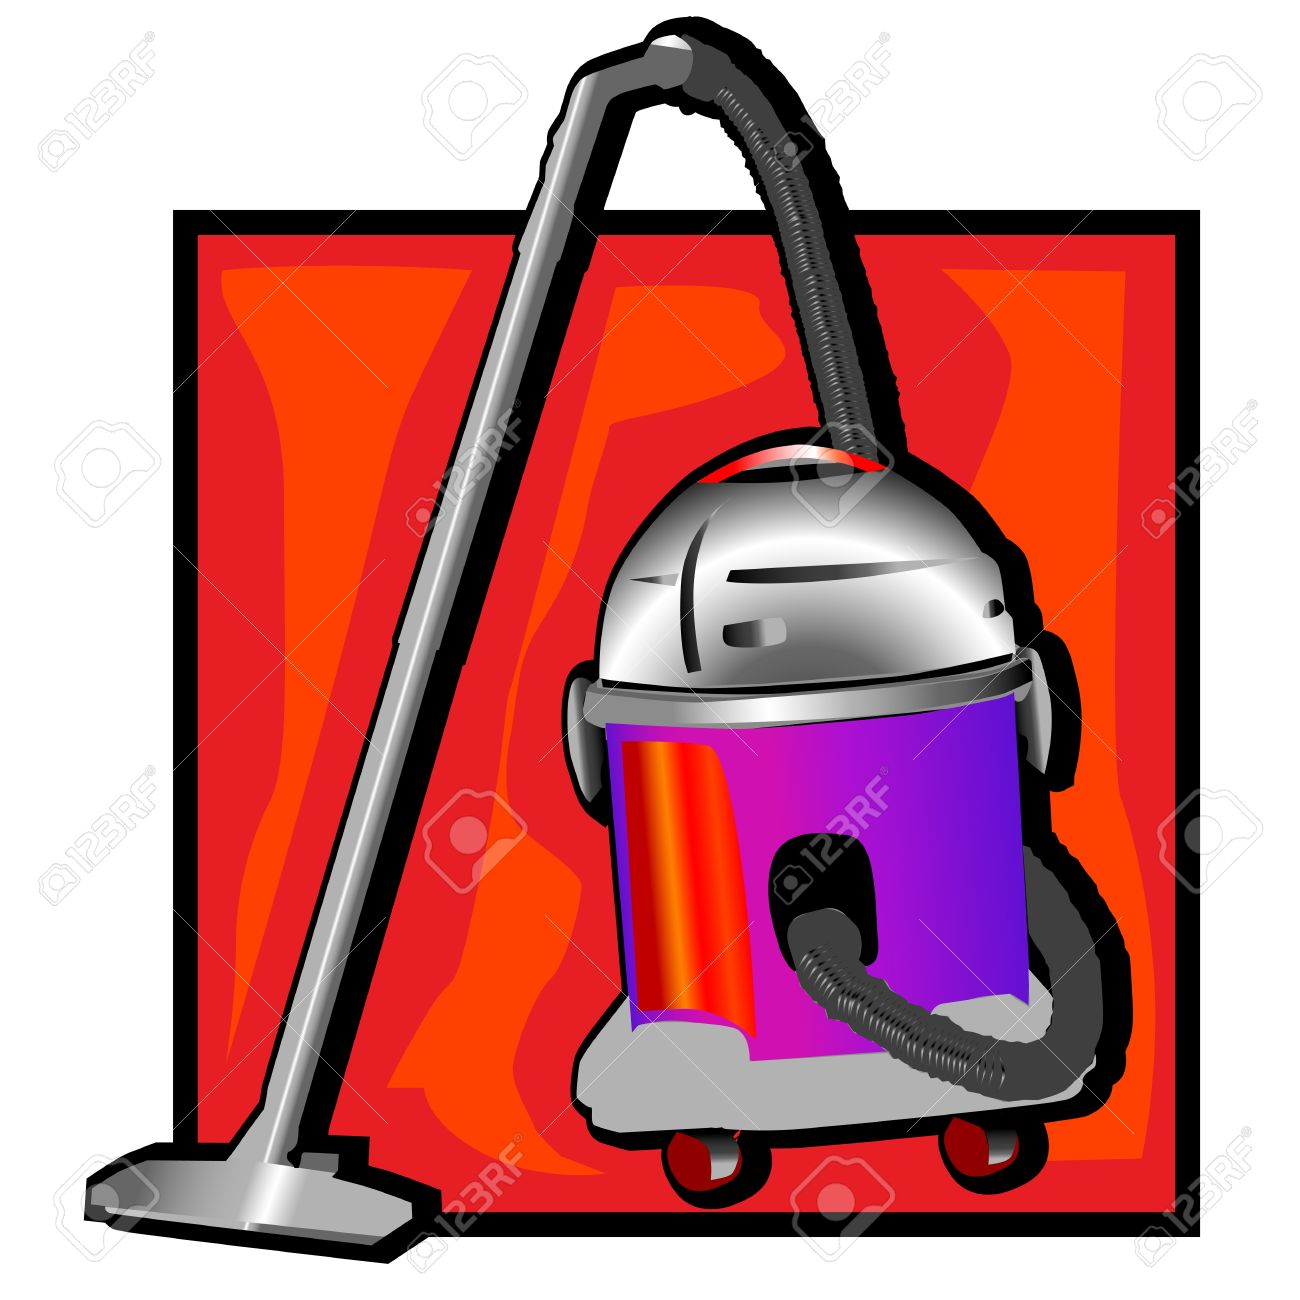 Vacuum cleaner clipart vacuum cleaner clip art - Retro Vacuum Cleaner Clip Art Stock Vector 11970058